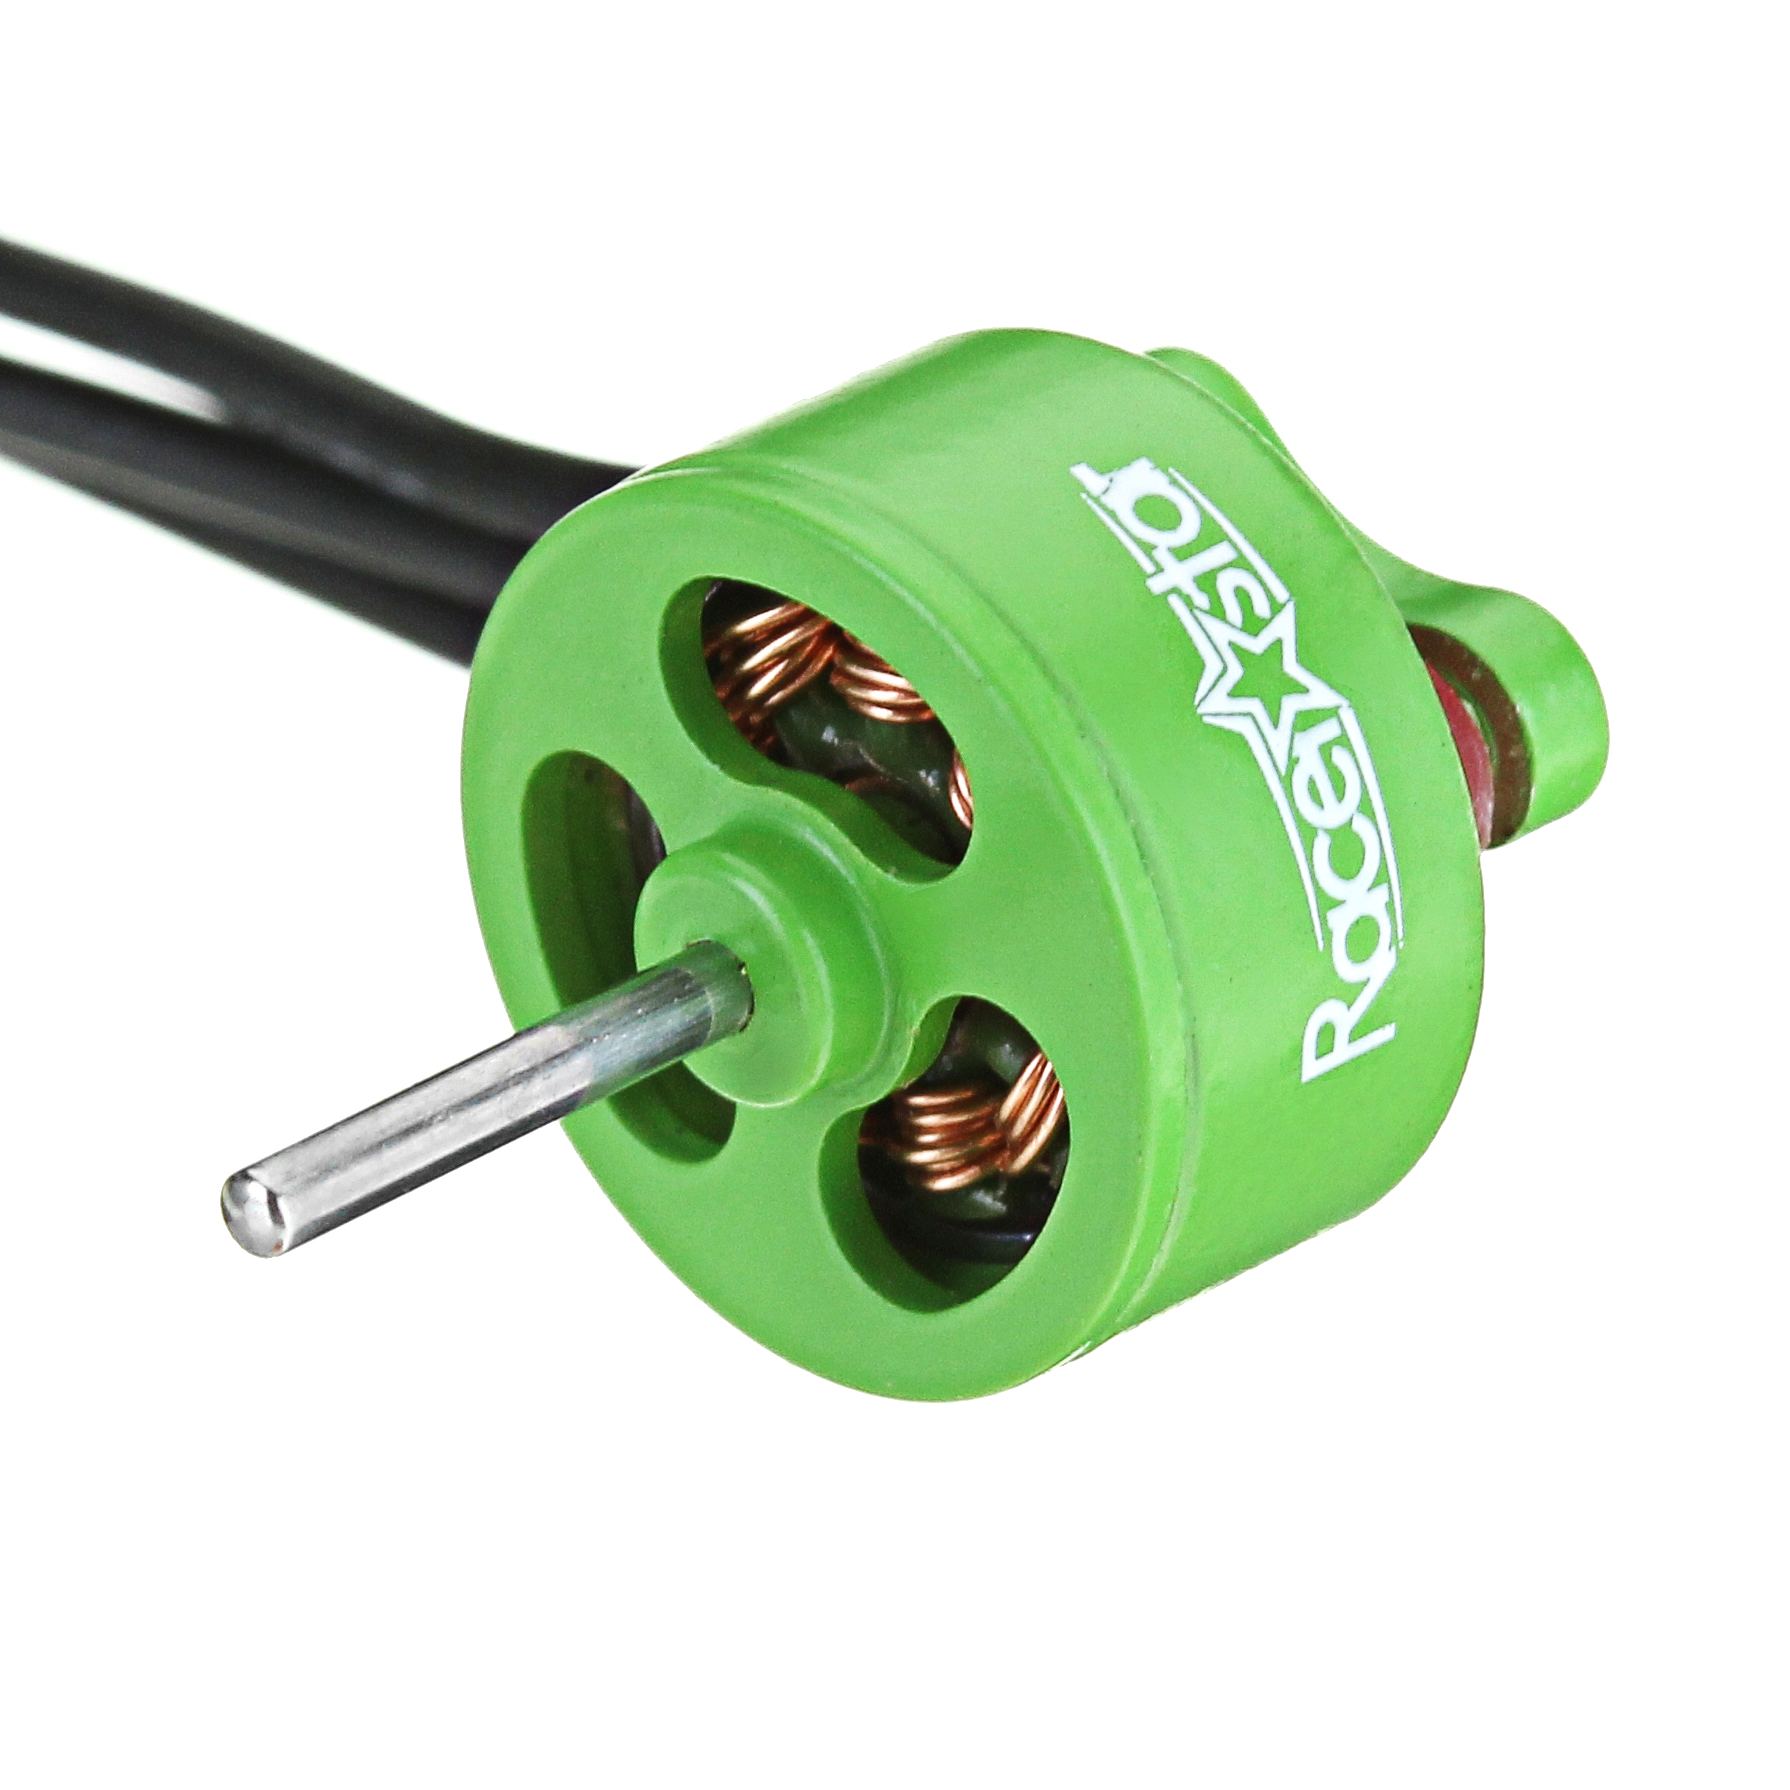 Racerstar 0703 BR0703B Green Edition 20000KV 15000KV Brushless Motor For FPV Racing RC Drone